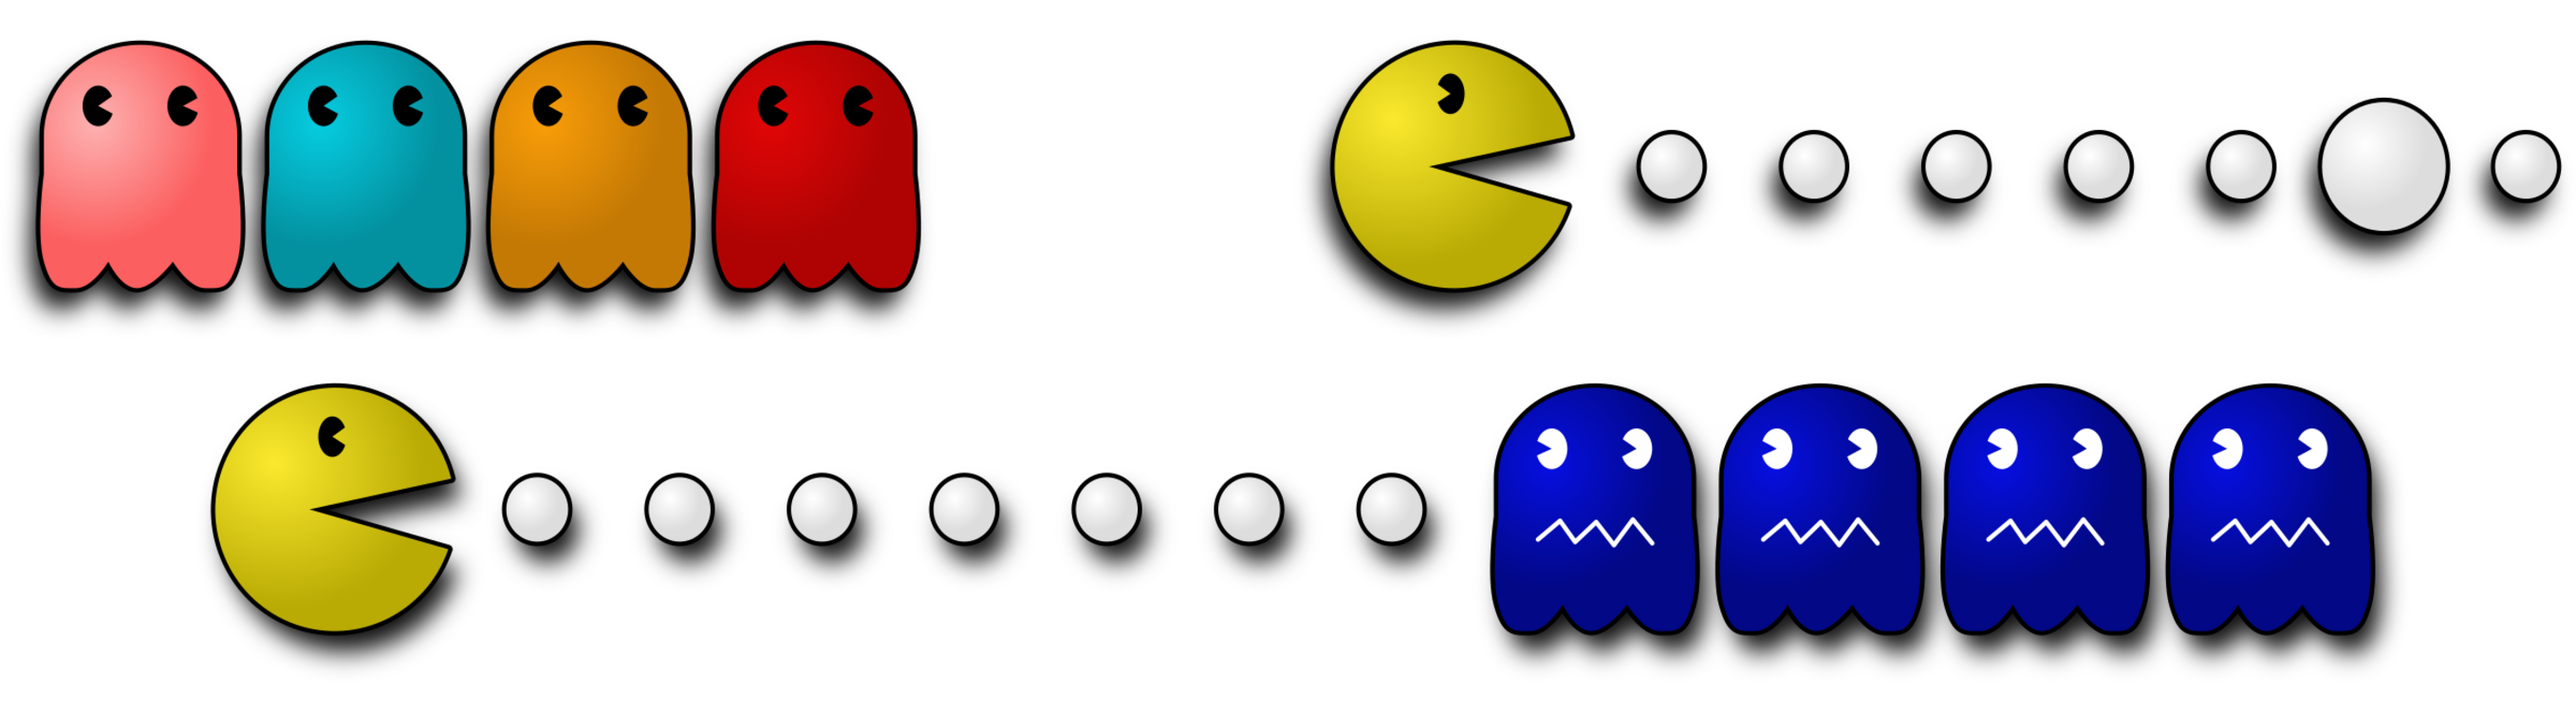 Ms  Pac-Man Pac-Man 2: The New Adventures Pac-Man World Ghosts CC0